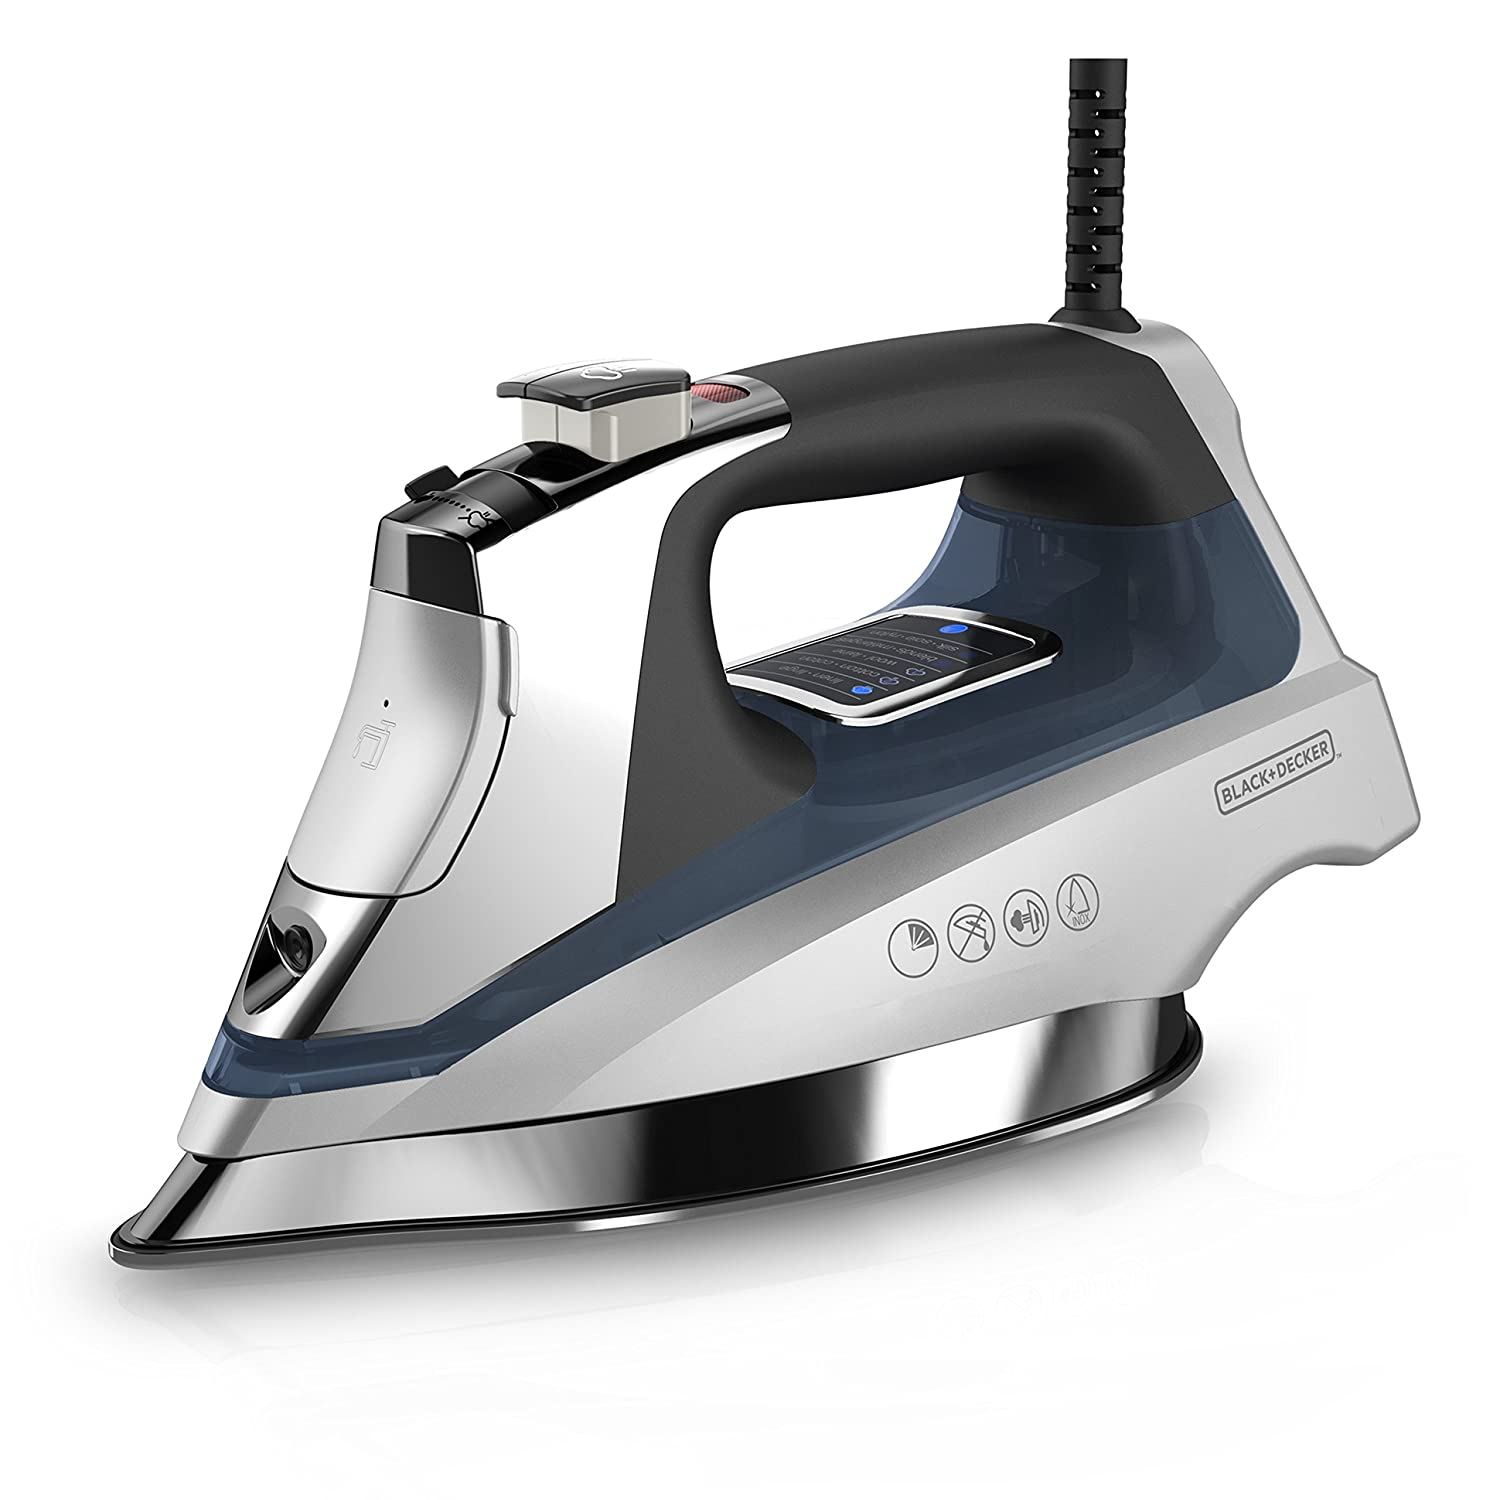 BLACK+DECKER Allure Digital Steam Iron, Silver/Blue, D3040 Black & Decker